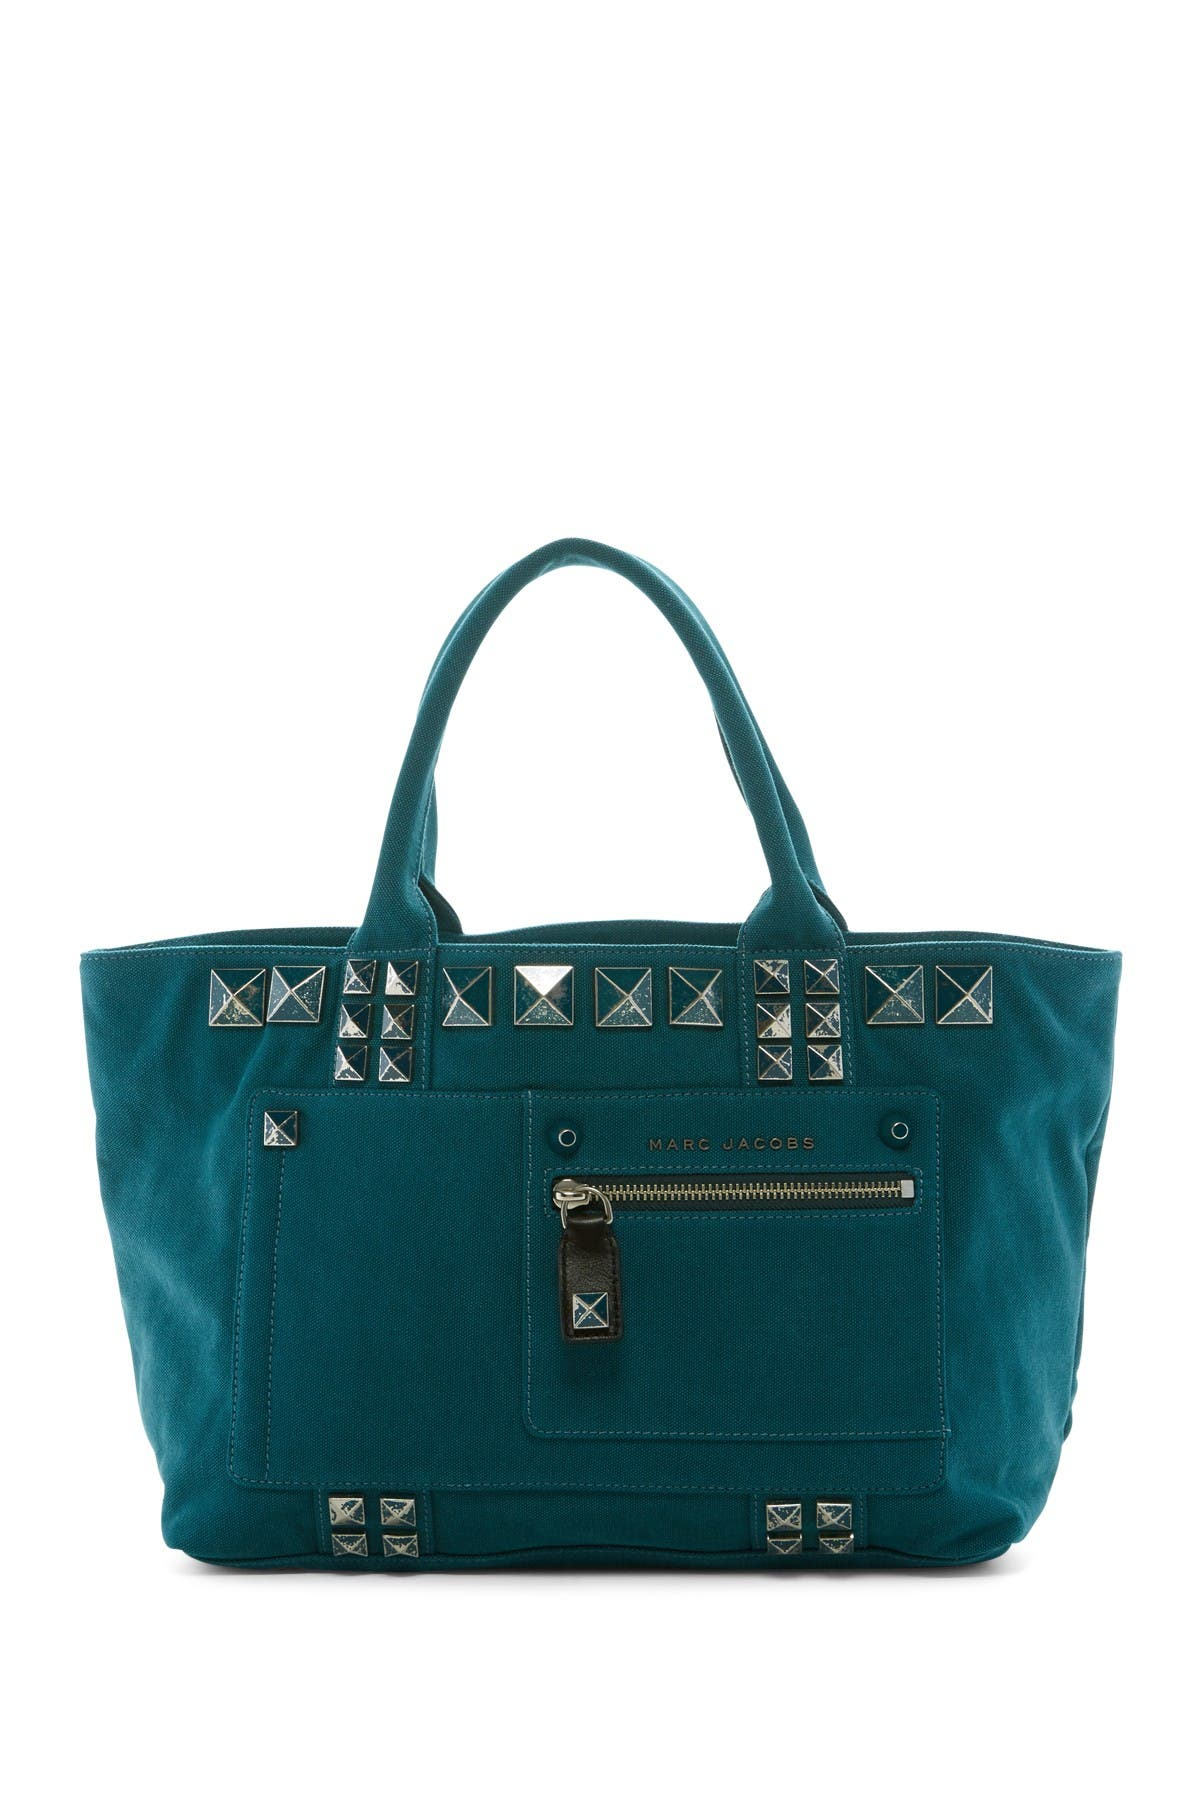 Image of Marc Jacobs Canvas Chipped Studs Tote